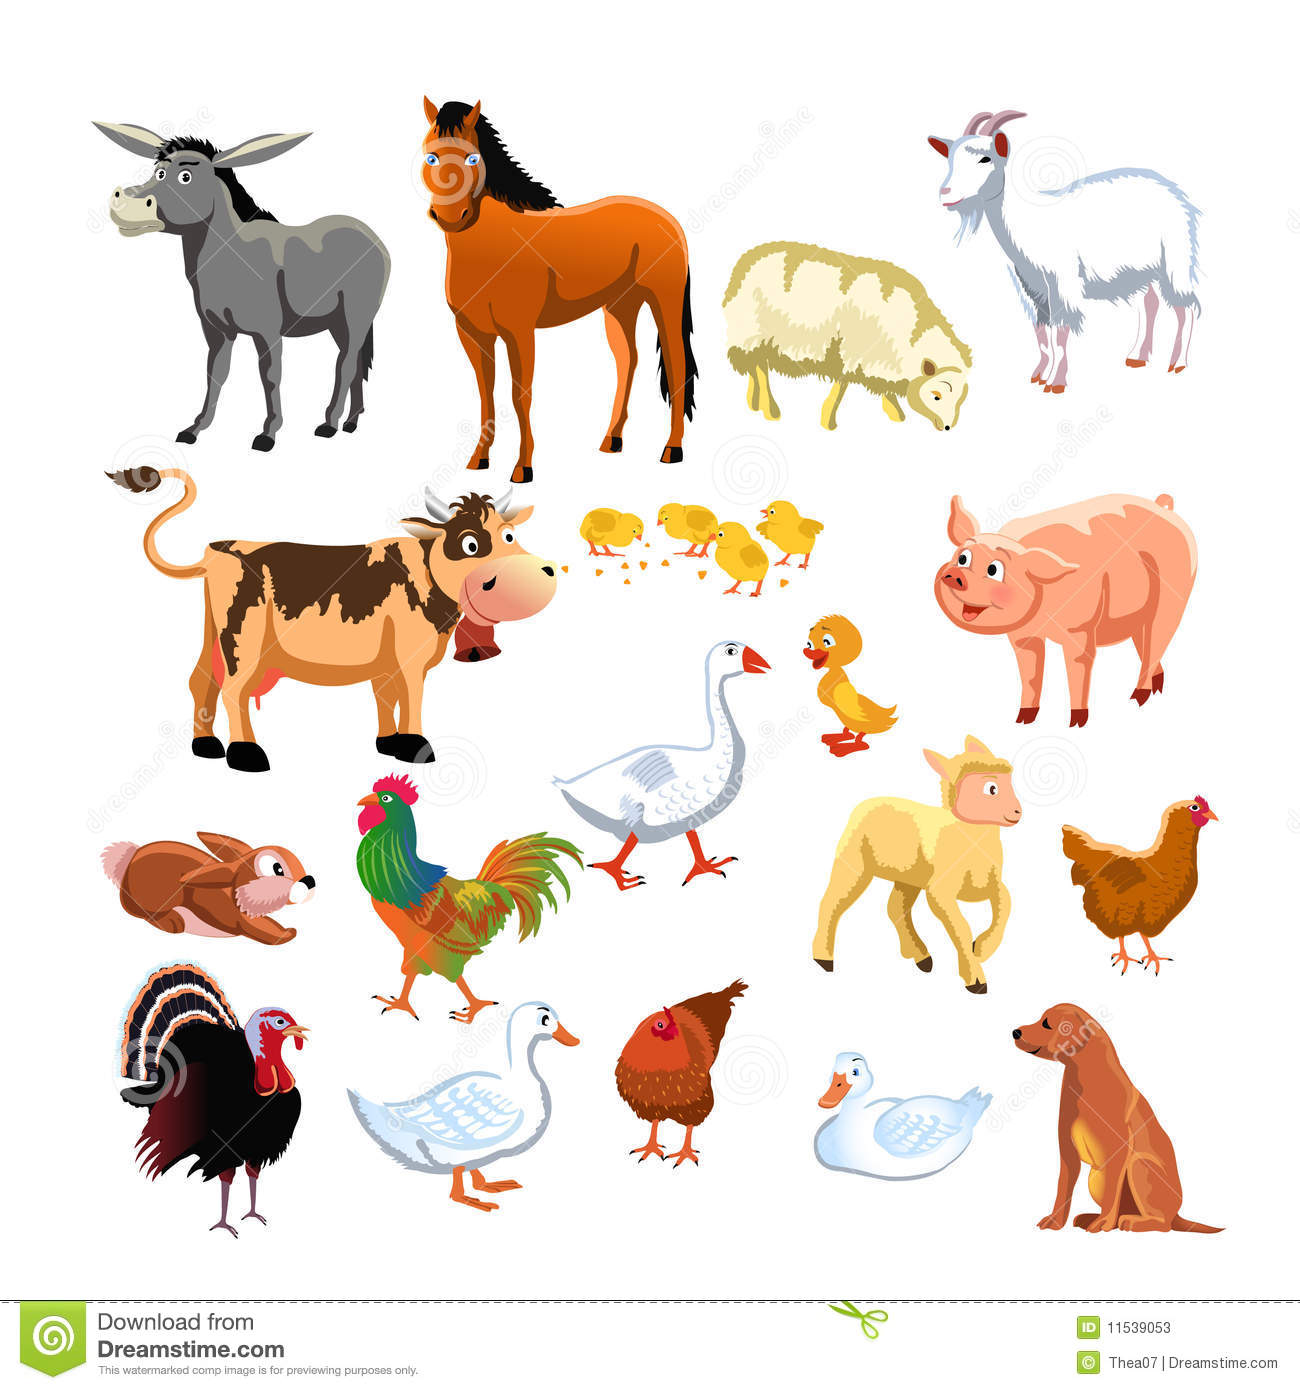 Animal stock clipart.  best images about